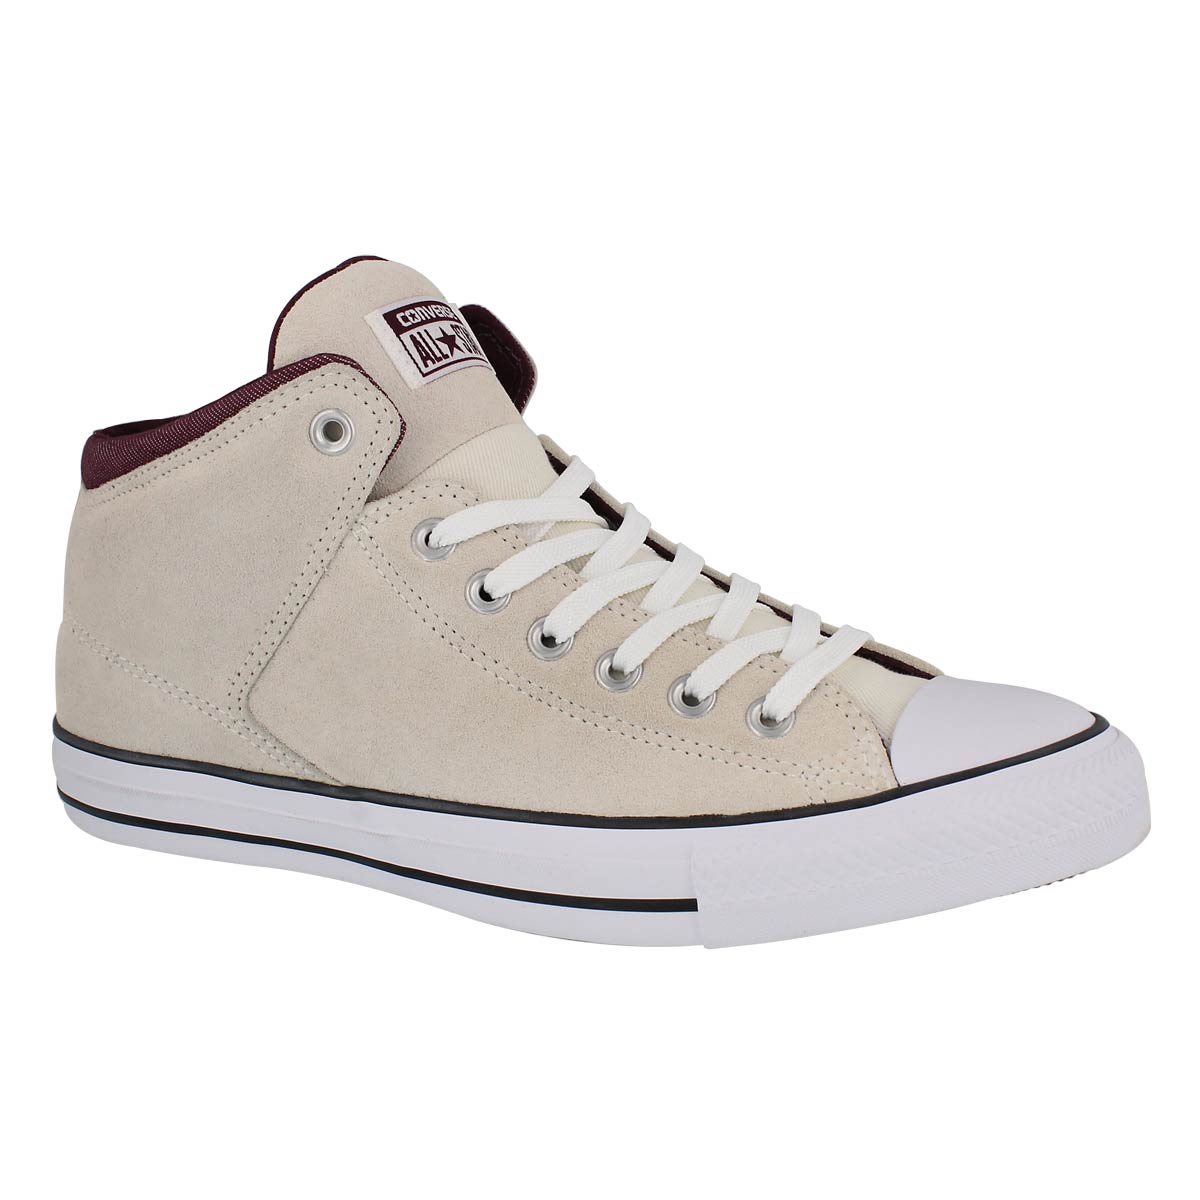 Men's CT ALL STAR HIGH STREET MID egrt/pl sneakers